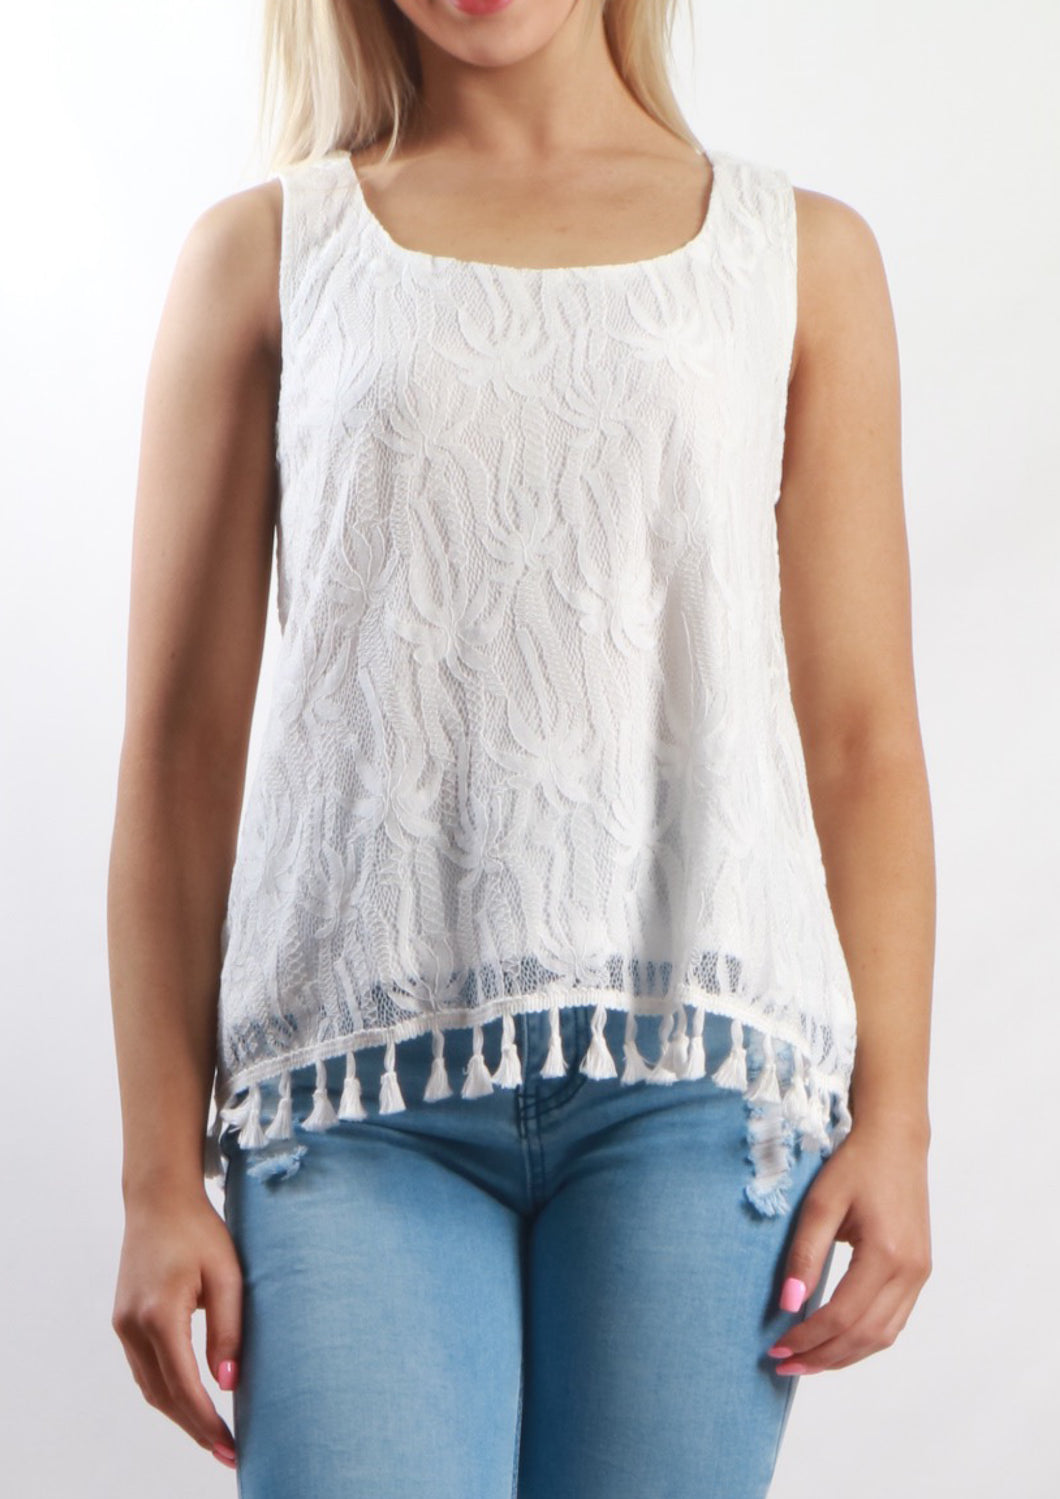 V1109-3SS Palm Tree Lace Sleeveless Top (Pack) New Arrival